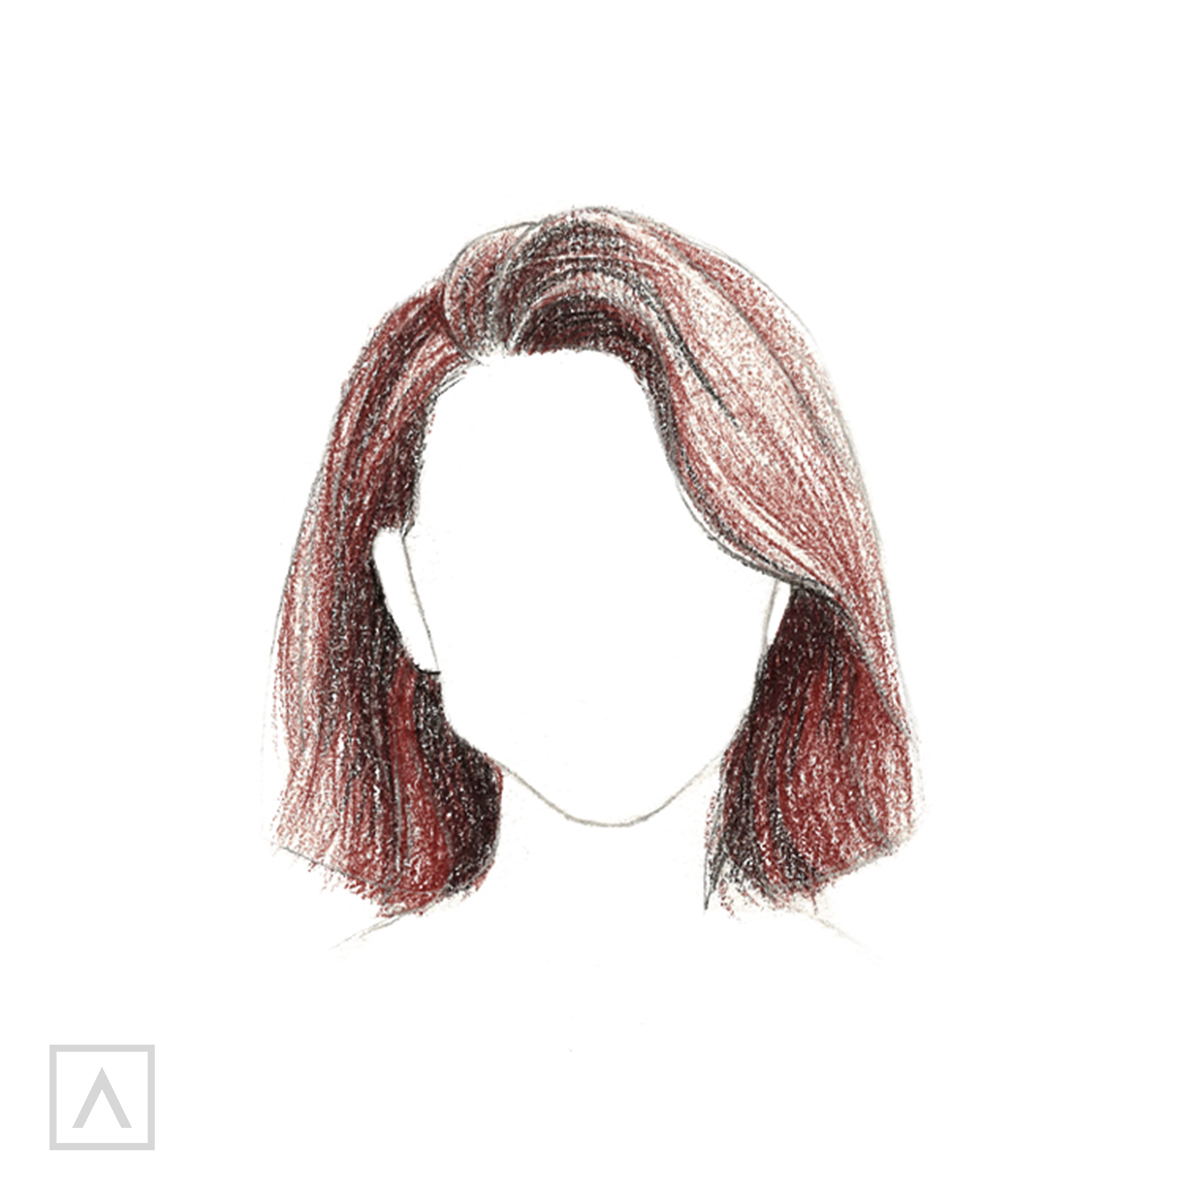 How to Draw Short Hair - Step 8